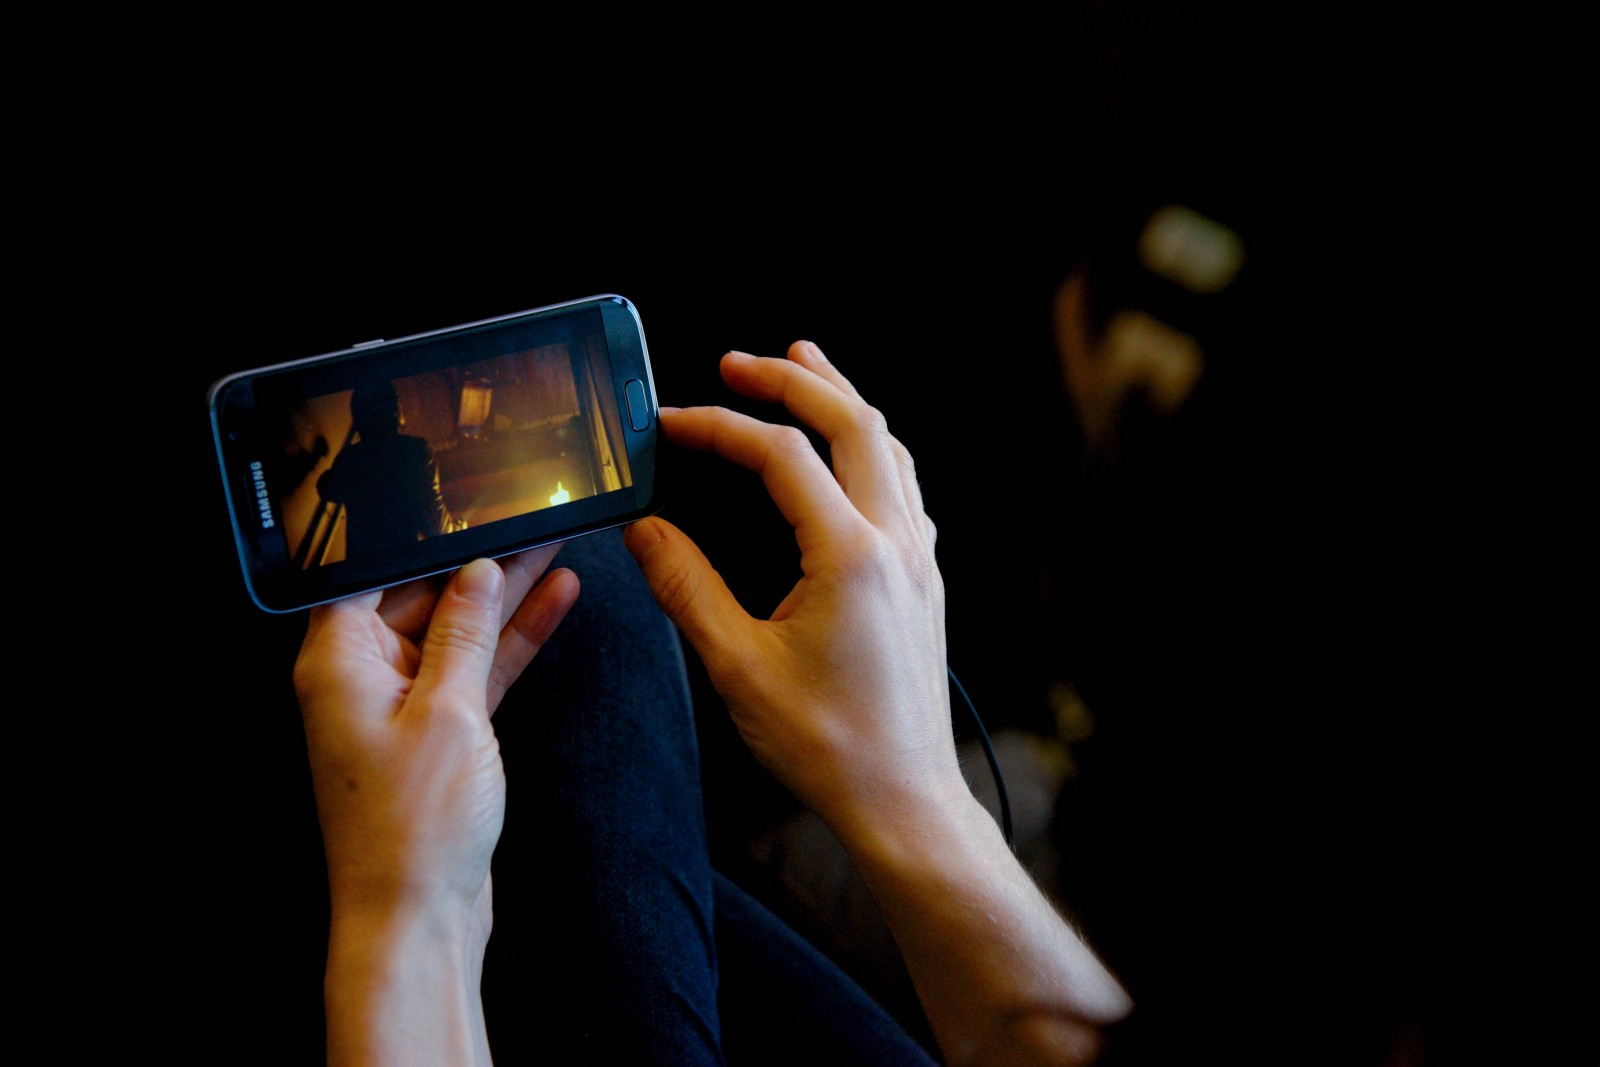 streaming movies on your mobile device? we need to talk.